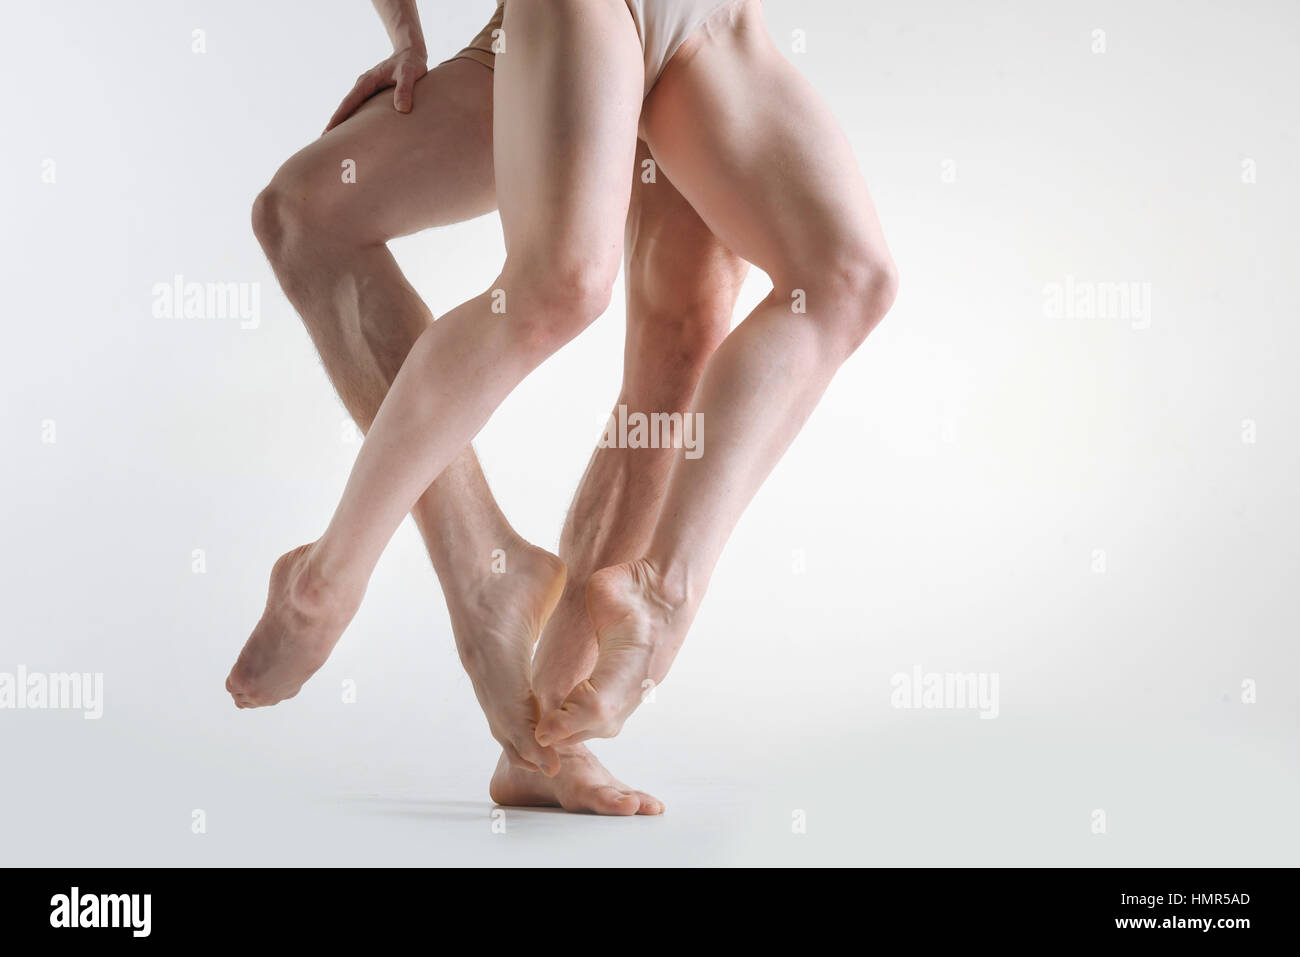 Muscular athletes legs dancing in the white colored studio - Stock Image